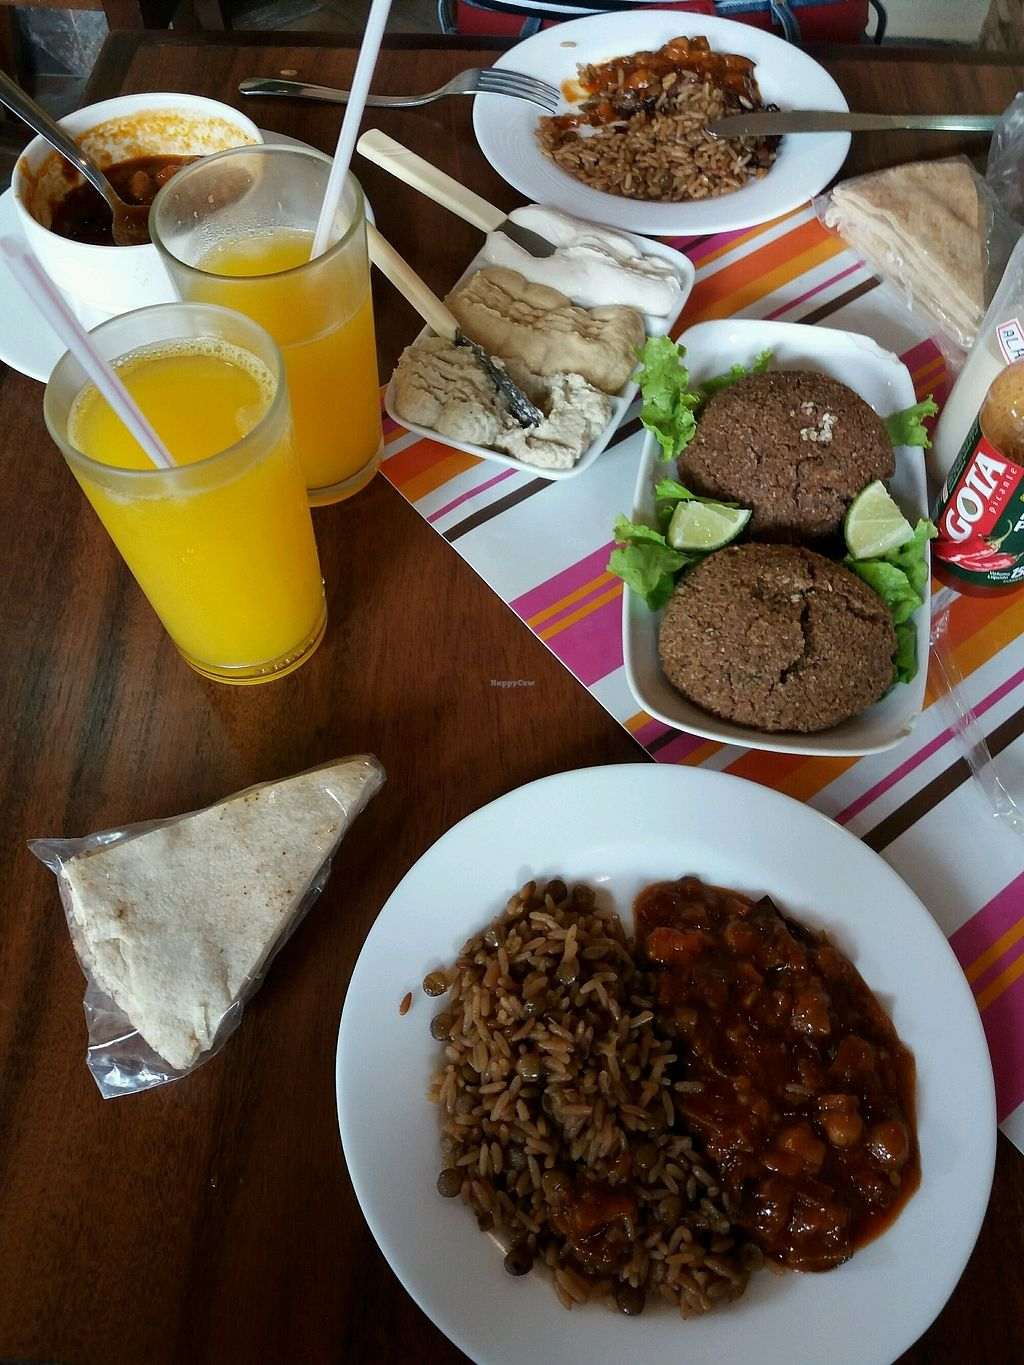 """Photo of Abu Salin Delicias Arabes   by <a href=""""/members/profile/Macintouch"""">Macintouch</a> <br/>Well served <br/> January 20, 2018  - <a href='/contact/abuse/image/109940/349024'>Report</a>"""